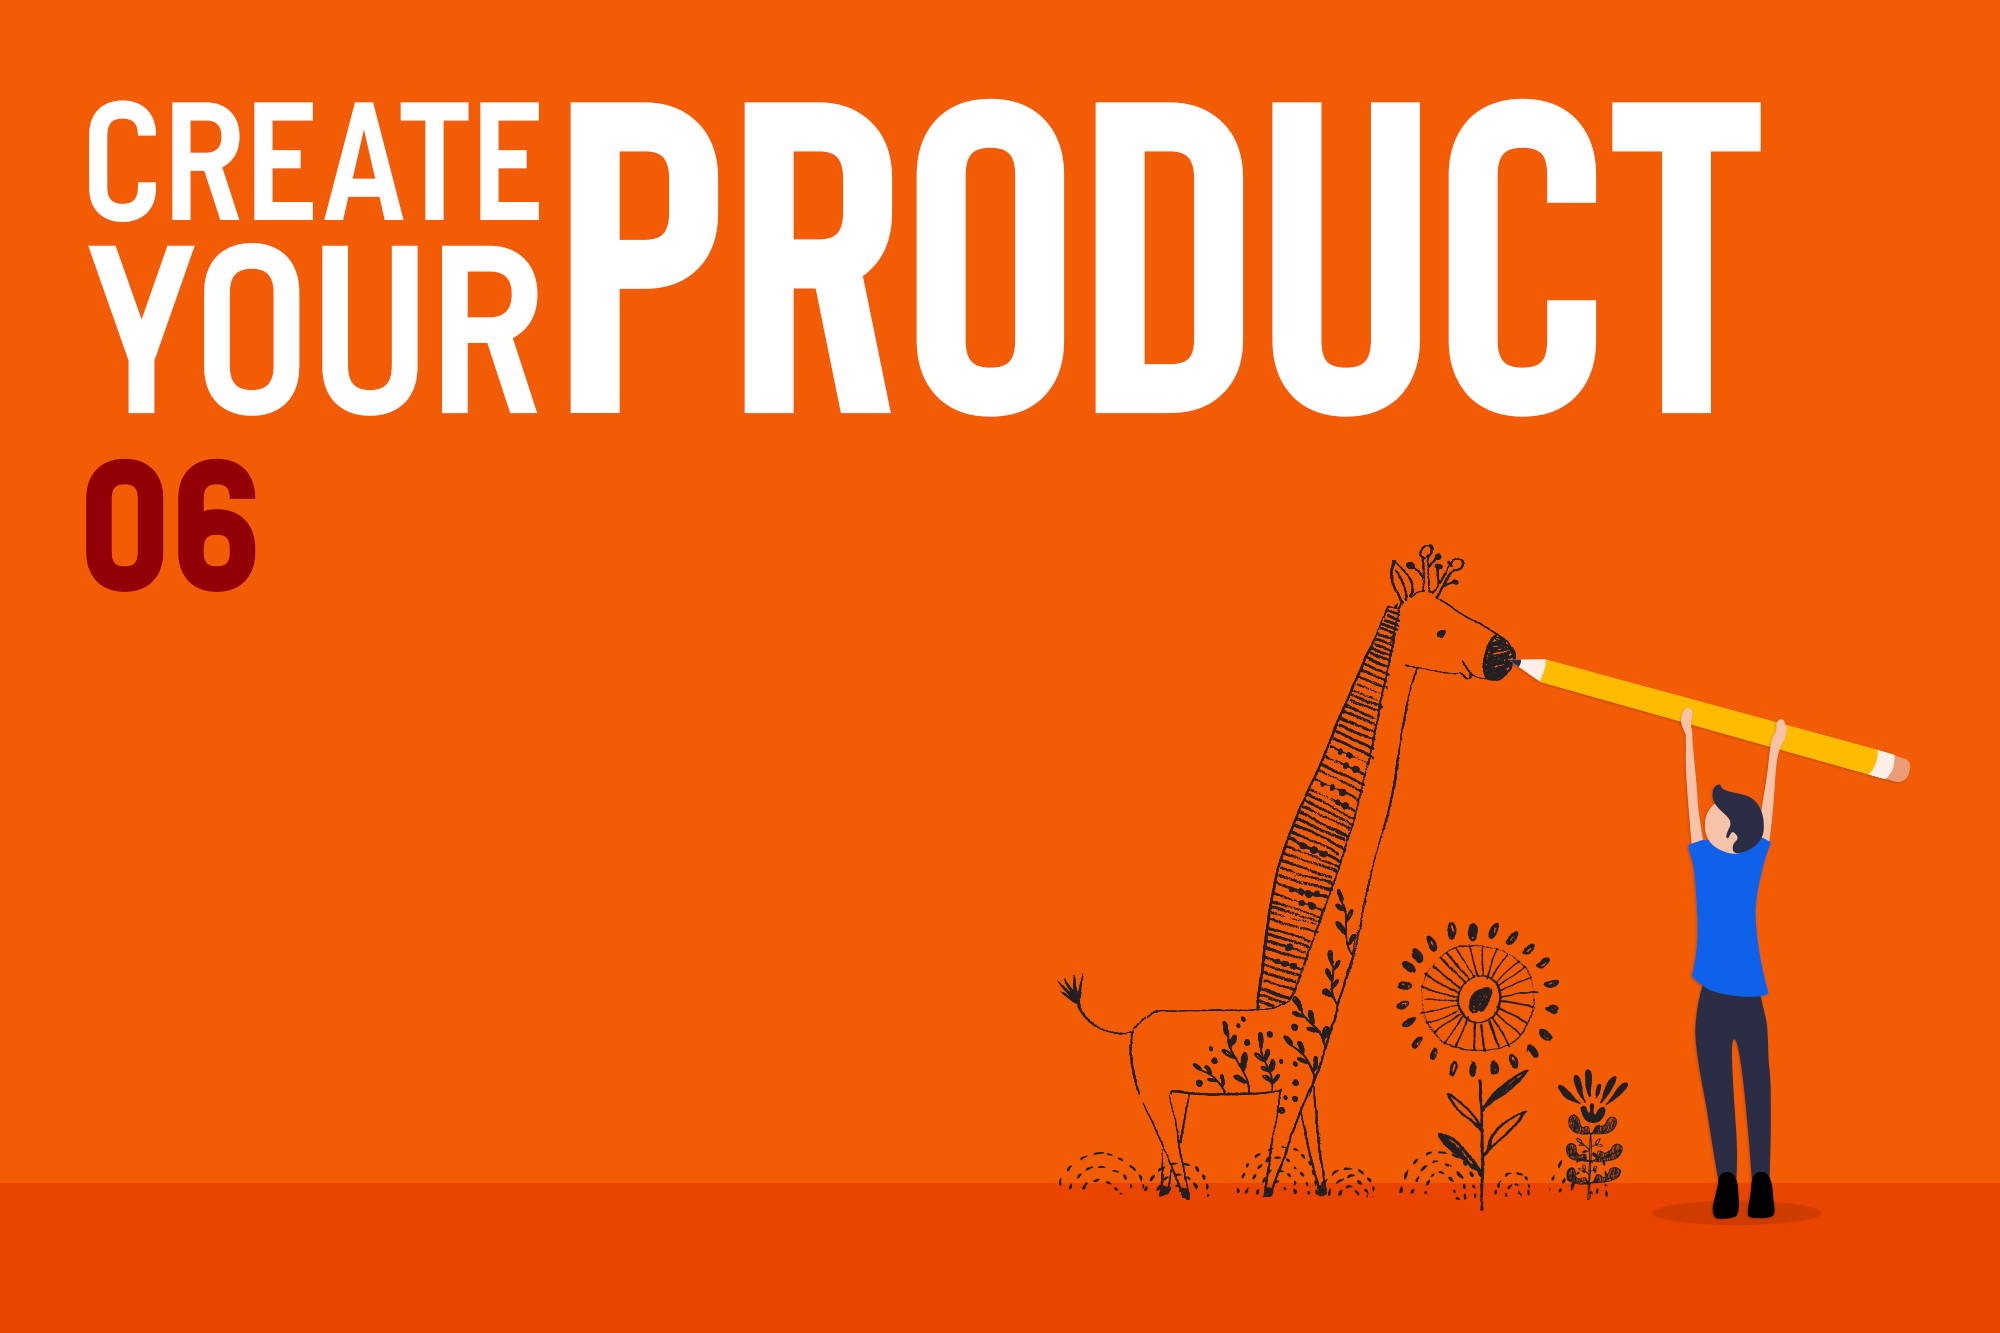 Create Your Product